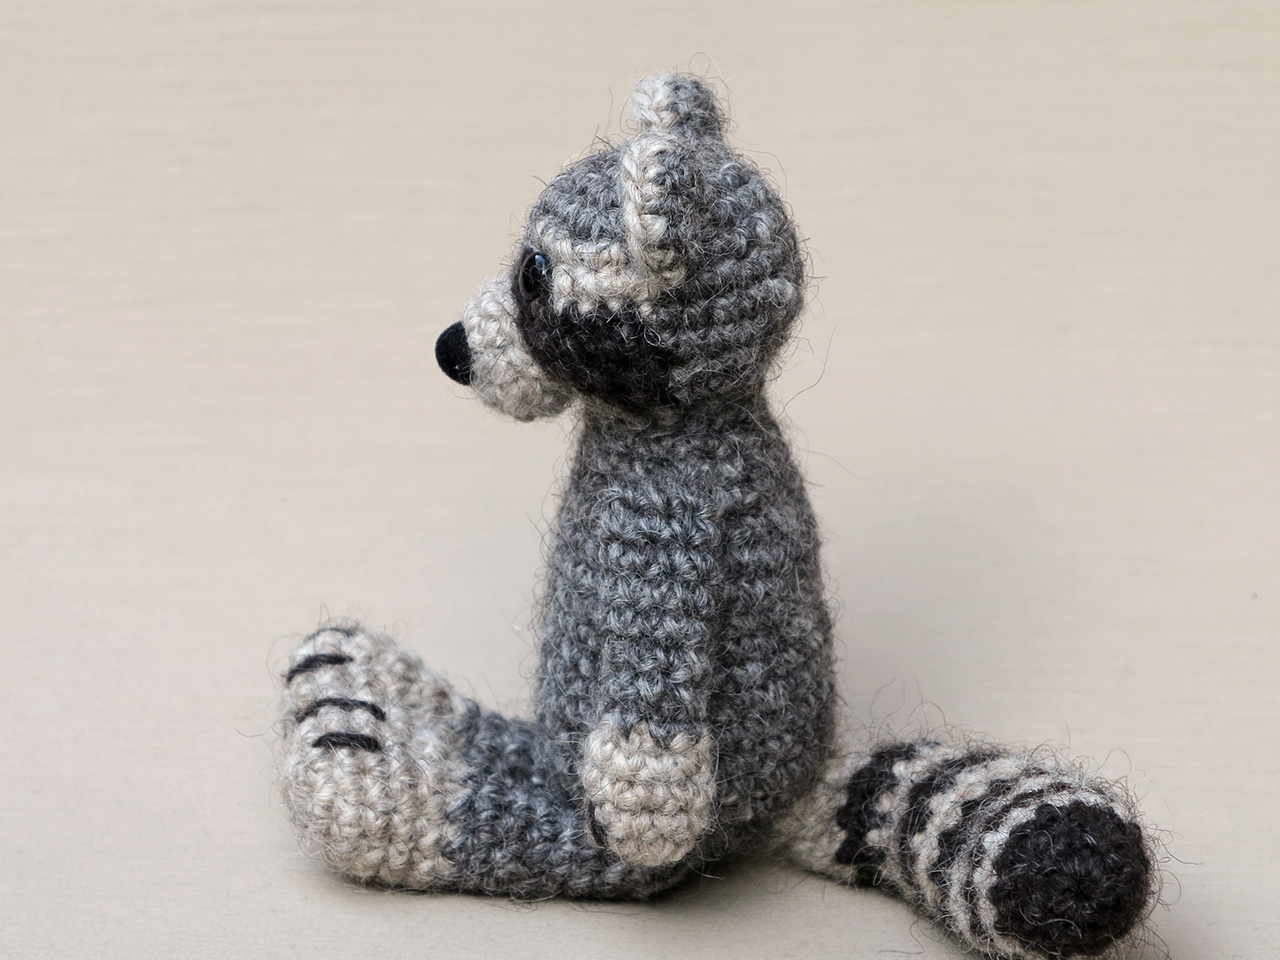 Raccoon amigurumi pattern | Amigurumi pattern, Stuffed animal ... | 960x1280